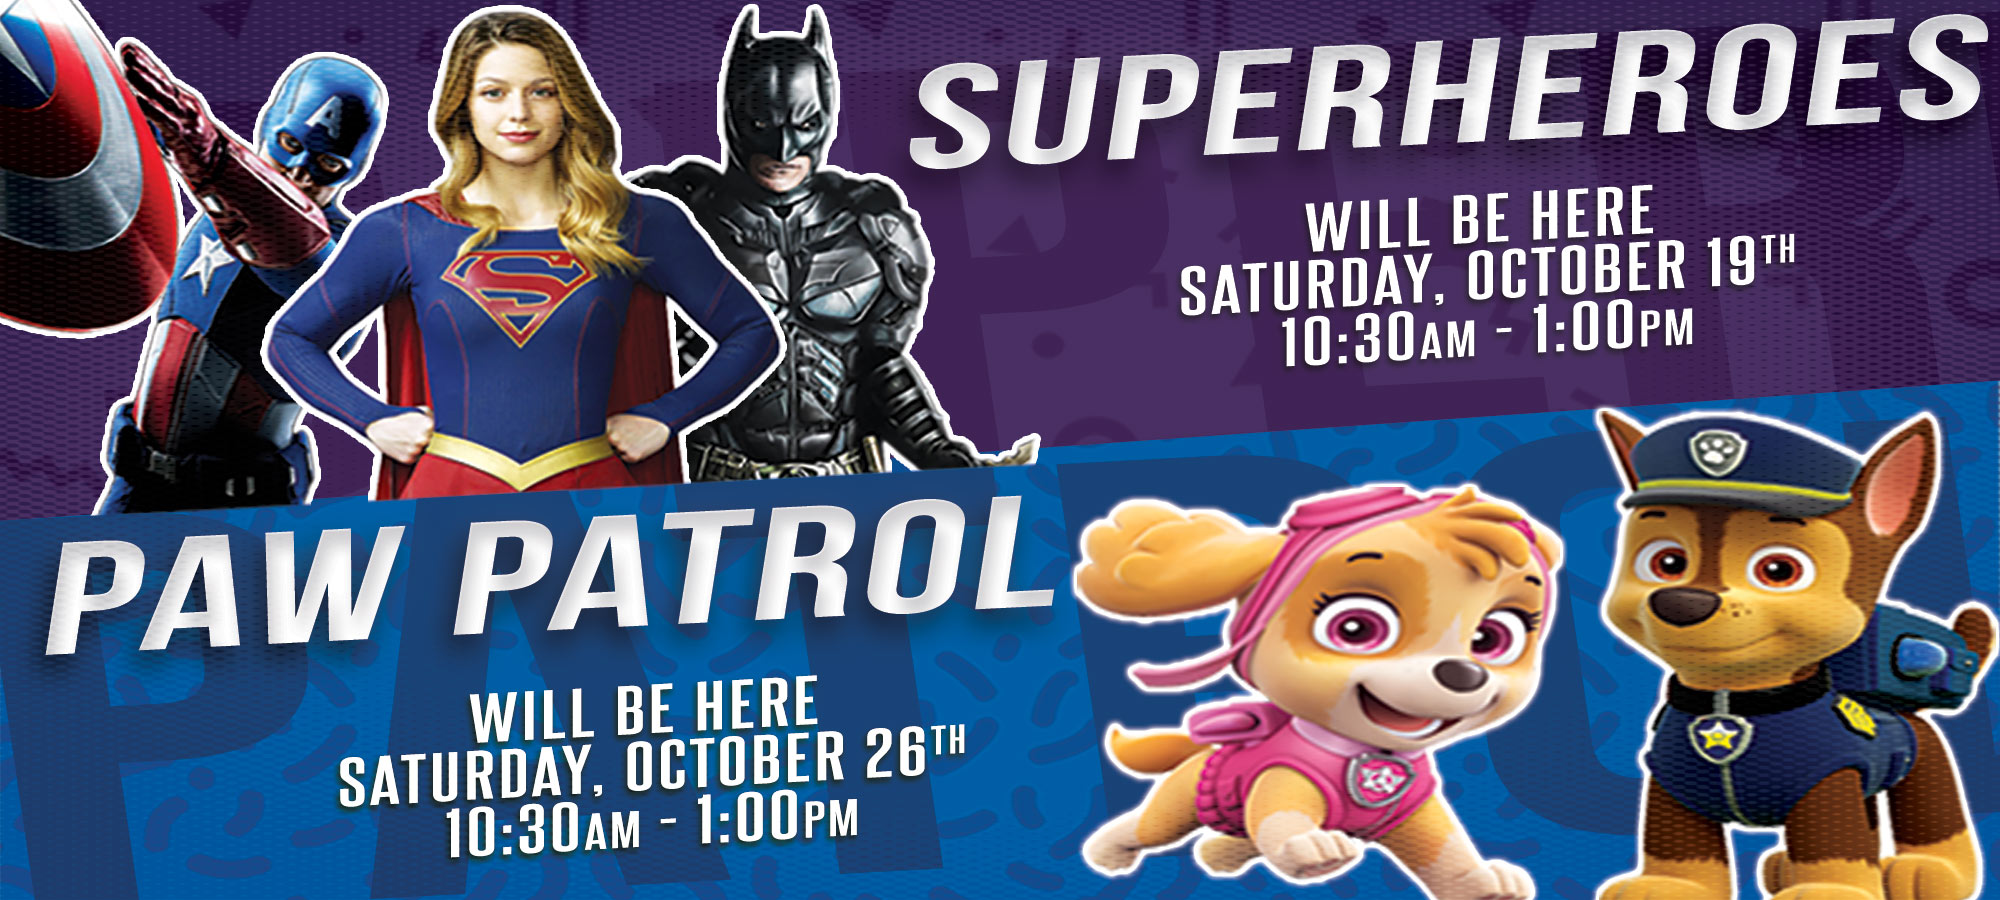 October-Saturday-Character-Events-2019-Superheroes-and-Paw